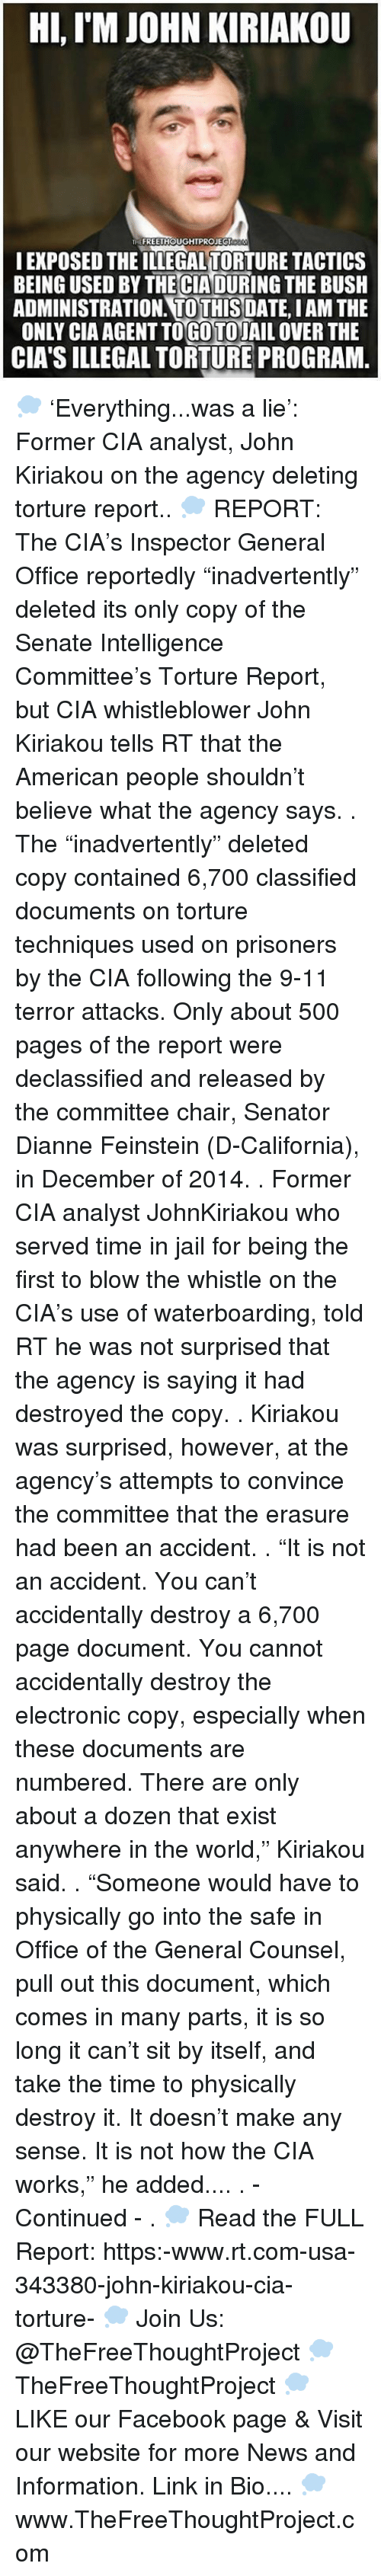 "Senations: Hi, IM JOHN KIRIAKOU  FREETHOUGHTPROJECT  I EXPOSED THEILLEGALTORTURE TACTICS  BEING USED BYTHECIADURING THE BUSH  ADMINISTRATION TO THIS  DATE IAM THE  ONLY CIAAGENTTOGOTOJAIL OVER THE  CIA's ILLEGAL TORTURE PROGRAM 💭 'Everything...was a lie': Former CIA analyst, John Kiriakou on the agency deleting torture report.. 💭 REPORT: The CIA's Inspector General Office reportedly ""inadvertently"" deleted its only copy of the Senate Intelligence Committee's Torture Report, but CIA whistleblower John Kiriakou tells RT that the American people shouldn't believe what the agency says. . The ""inadvertently"" deleted copy contained 6,700 classified documents on torture techniques used on prisoners by the CIA following the 9-11 terror attacks. Only about 500 pages of the report were declassified and released by the committee chair, Senator Dianne Feinstein (D-California), in December of 2014. . Former CIA analyst JohnKiriakou who served time in jail for being the first to blow the whistle on the CIA's use of waterboarding, told RT he was not surprised that the agency is saying it had destroyed the copy. . Kiriakou was surprised, however, at the agency's attempts to convince the committee that the erasure had been an accident. . ""It is not an accident. You can't accidentally destroy a 6,700 page document. You cannot accidentally destroy the electronic copy, especially when these documents are numbered. There are only about a dozen that exist anywhere in the world,"" Kiriakou said. . ""Someone would have to physically go into the safe in Office of the General Counsel, pull out this document, which comes in many parts, it is so long it can't sit by itself, and take the time to physically destroy it. It doesn't make any sense. It is not how the CIA works,"" he added.... . - Continued - . 💭 Read the FULL Report: https:-www.rt.com-usa-343380-john-kiriakou-cia-torture- 💭 Join Us: @TheFreeThoughtProject 💭 TheFreeThoughtProject 💭 LIKE our Facebook page & Visit our website for more News and Information. Link in Bio.... 💭 www.TheFreeThoughtProject.com"